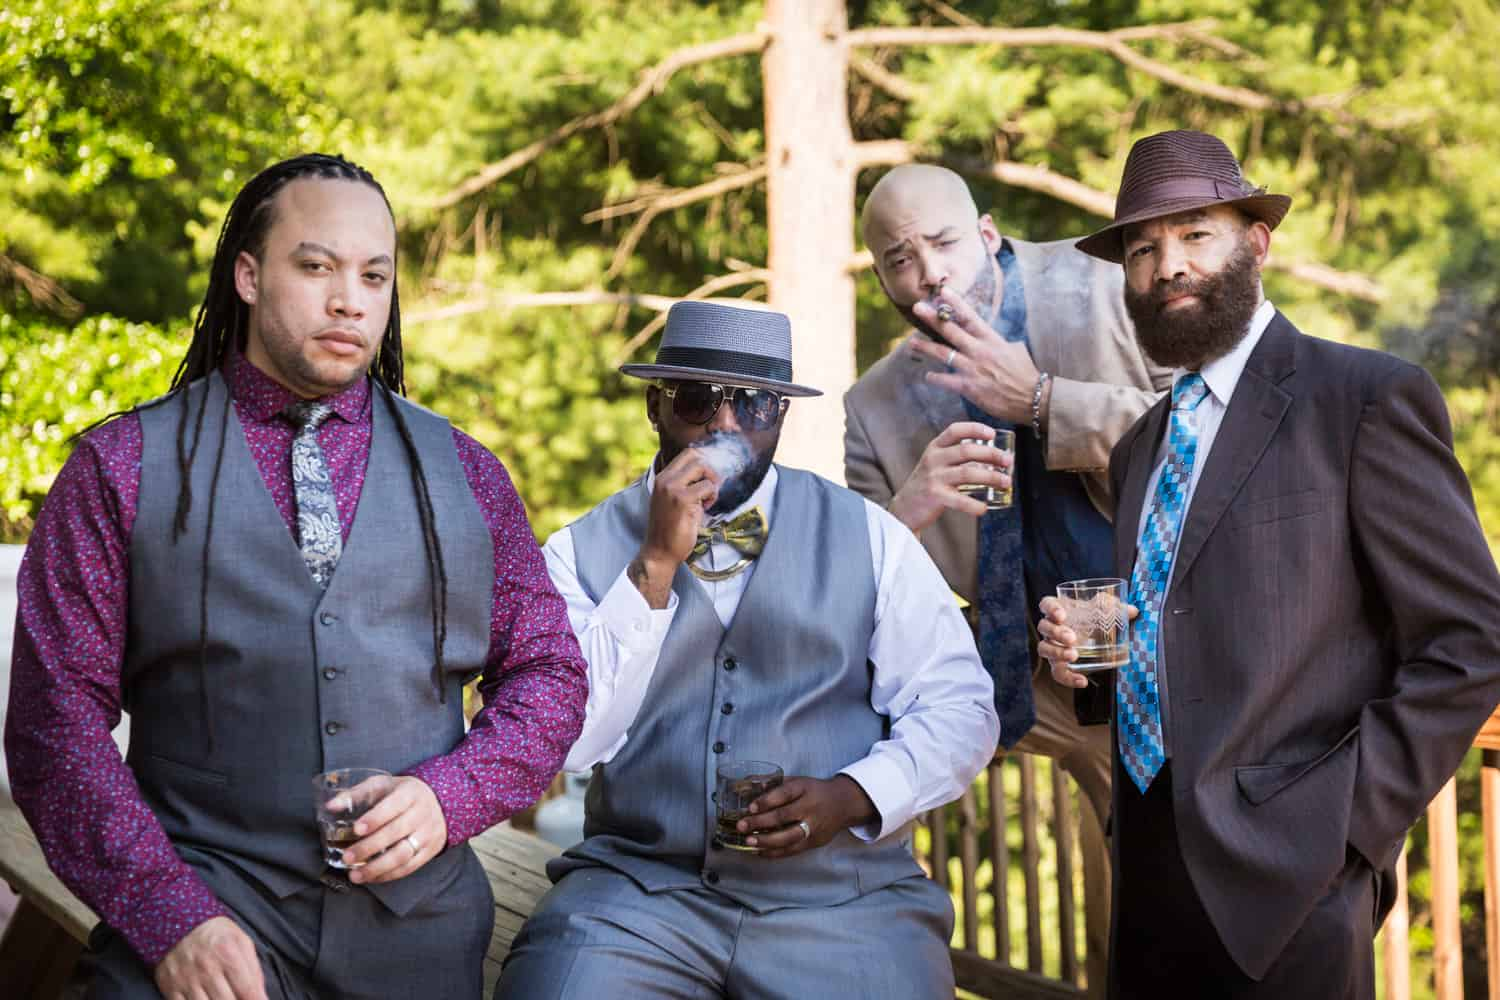 Male family members smoking together on porch during a family reunion portrait